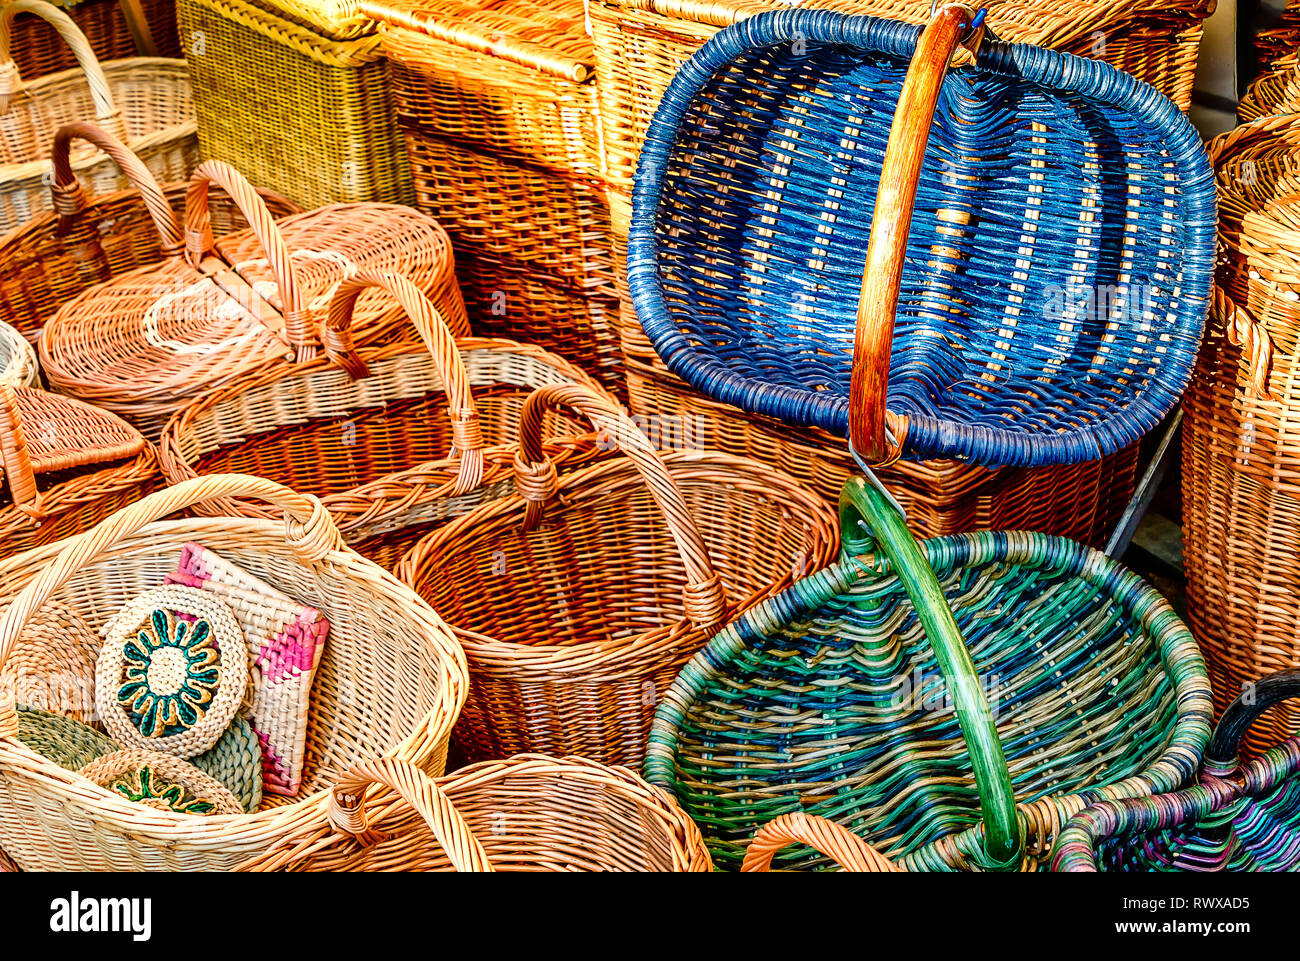 Shopping for wicker baskets at a German weekly market - Stock Image